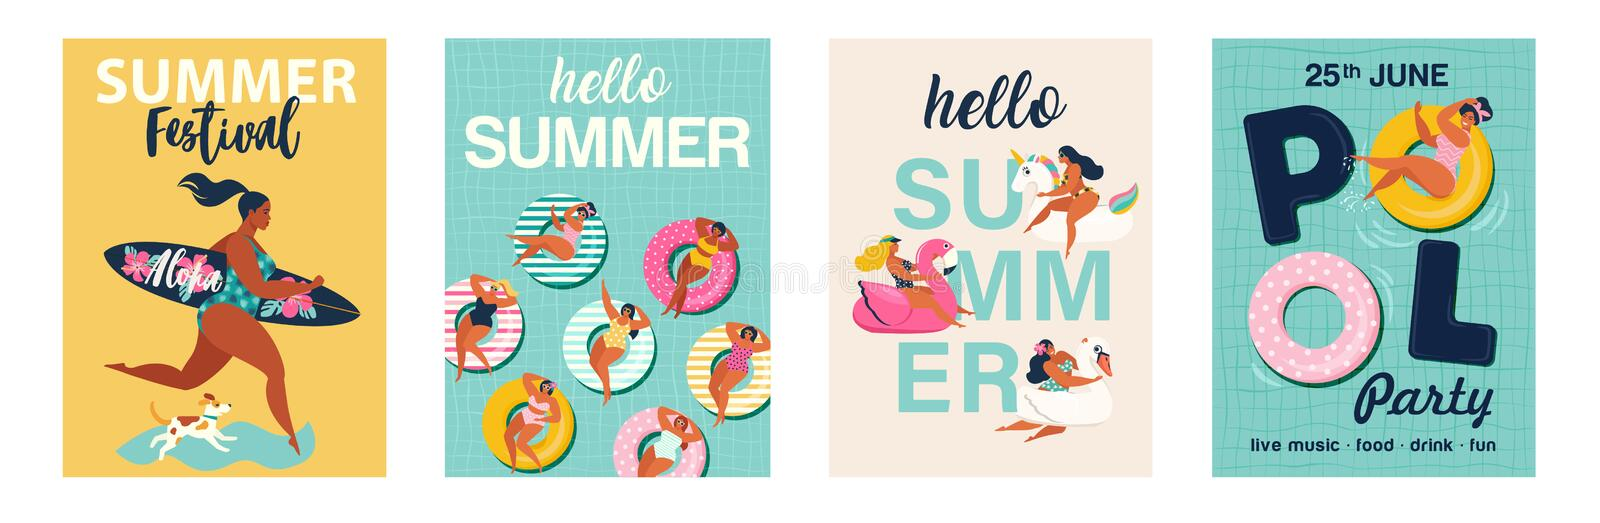 Hello summer posters in vector. Cute Retro posters set. royalty free illustration